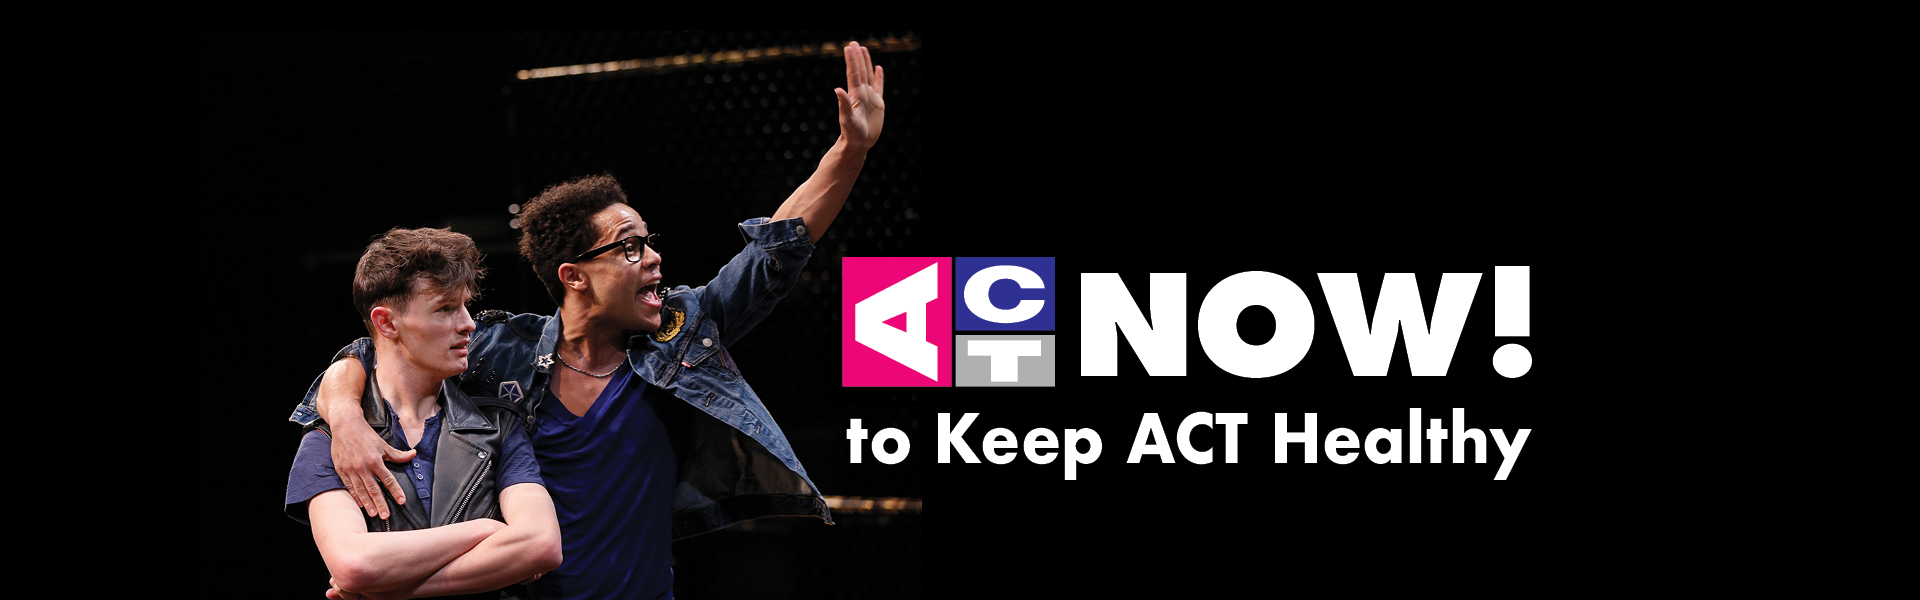 ACTNow to keep ACT healthy